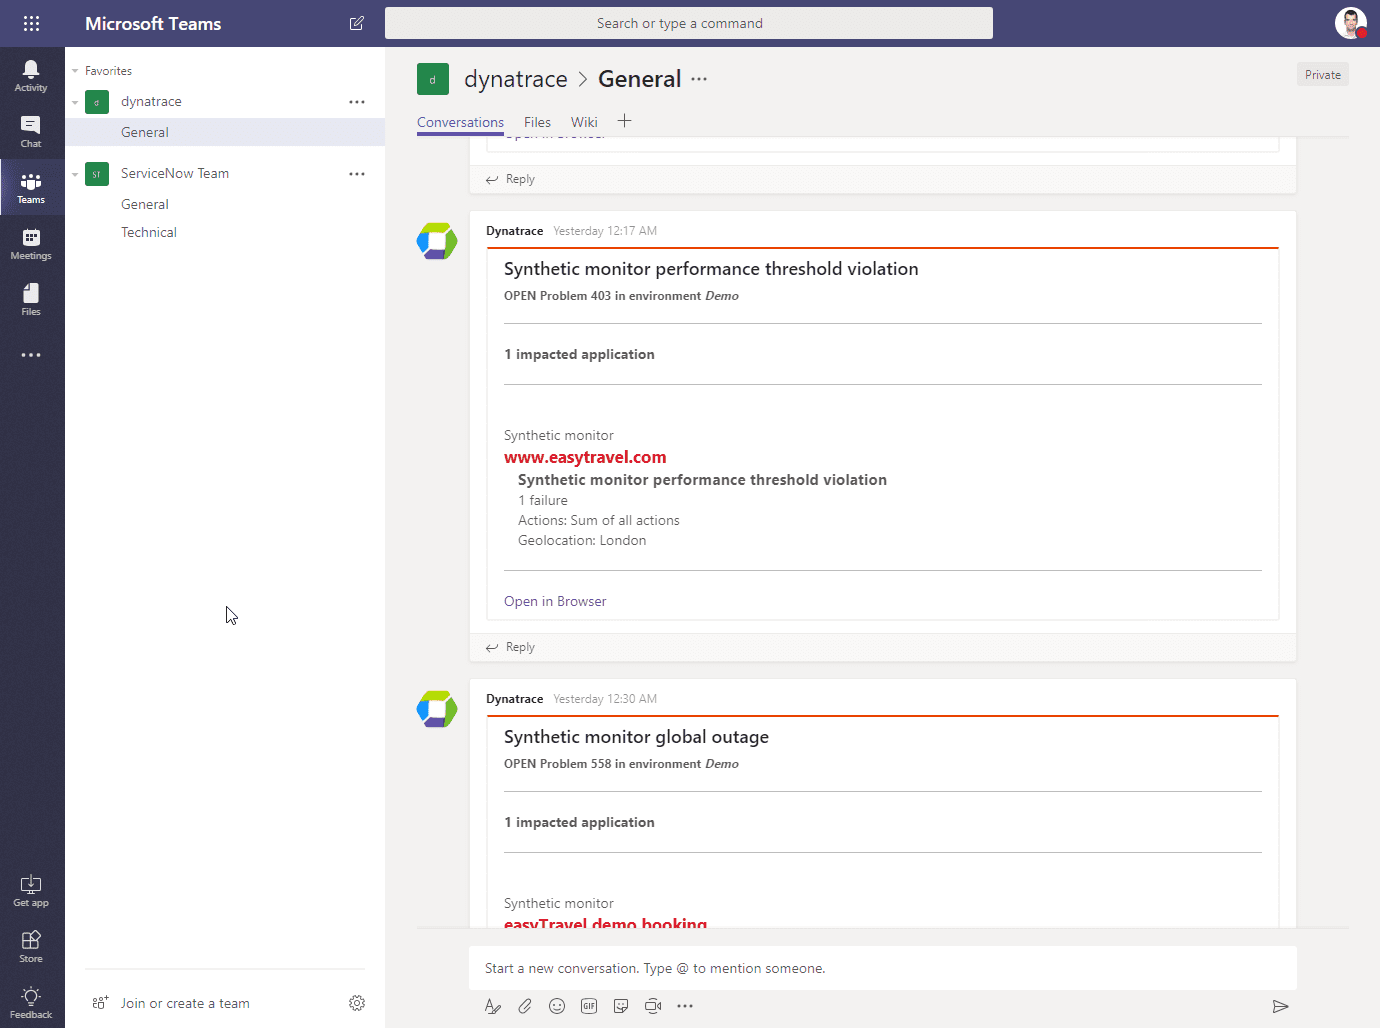 Microsoft Teams screen integrated with Dynatrace